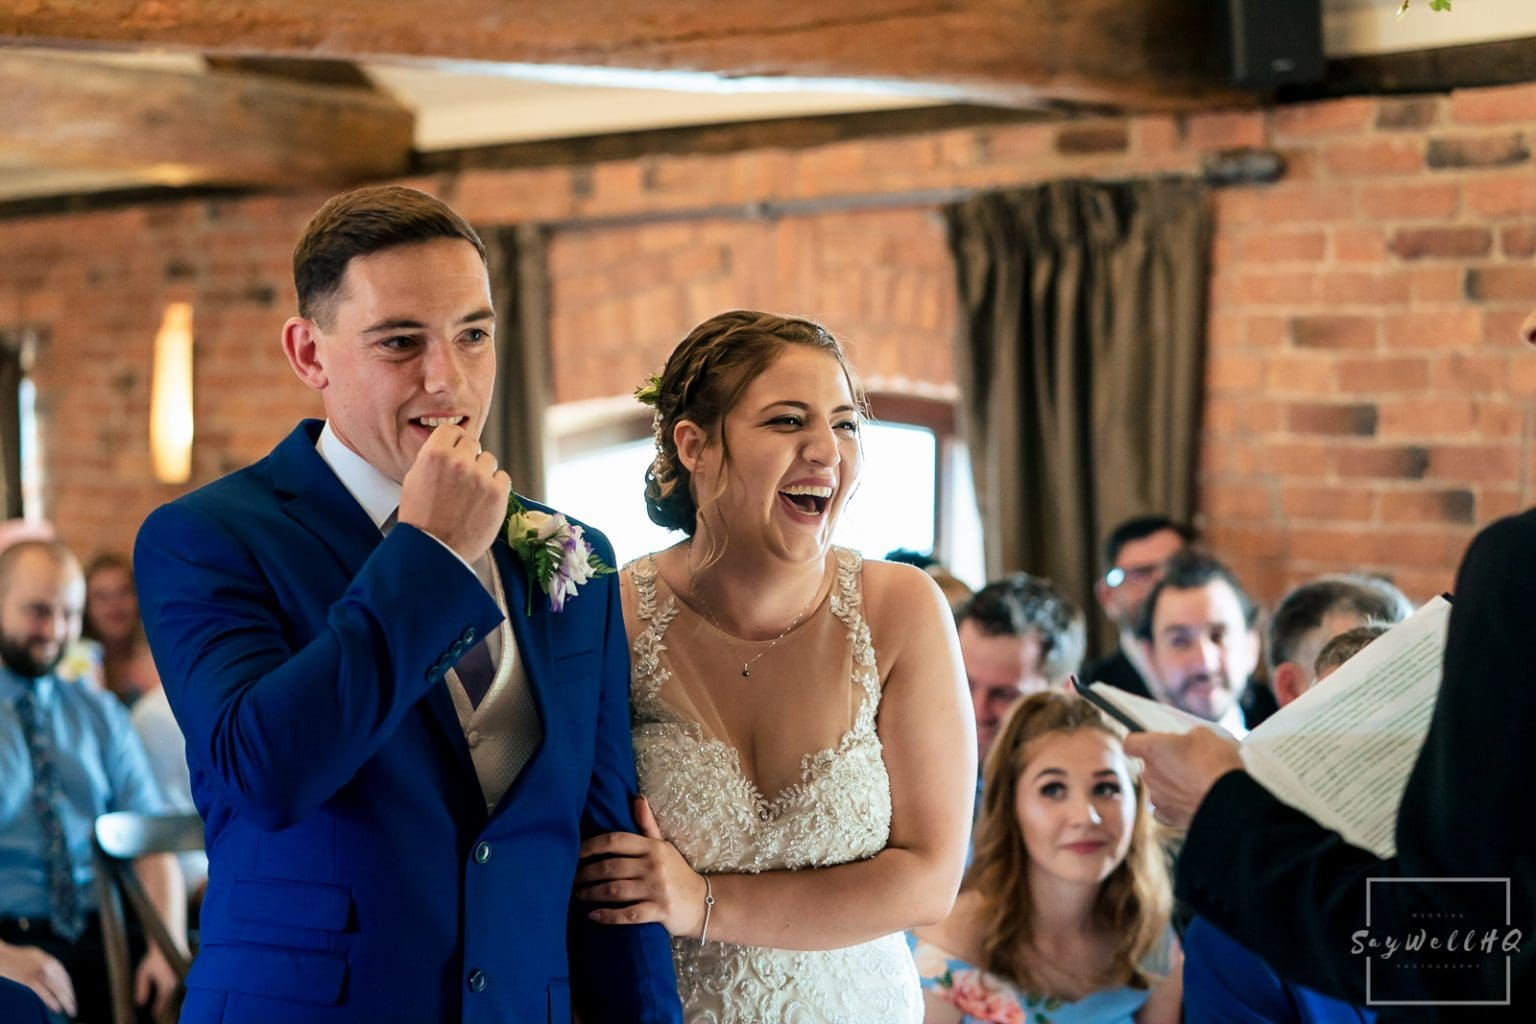 Swancar Farm Wedding Photography - Bride and groom enjoy the wedding ceremony at swancar Farm in Nottingham